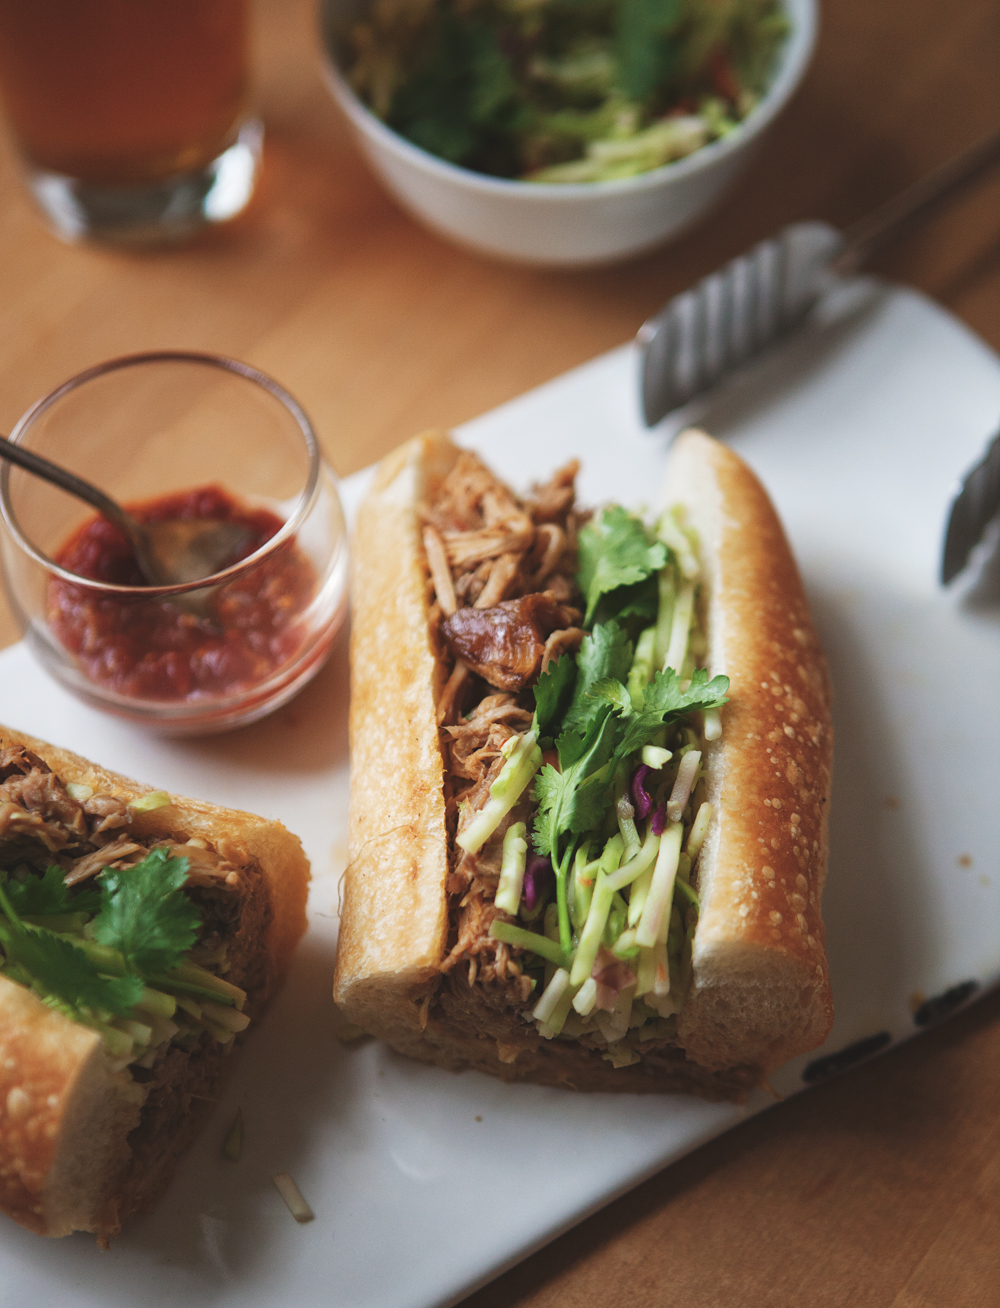 Thai-style-pulled-pork-banh-mi_05.jpg